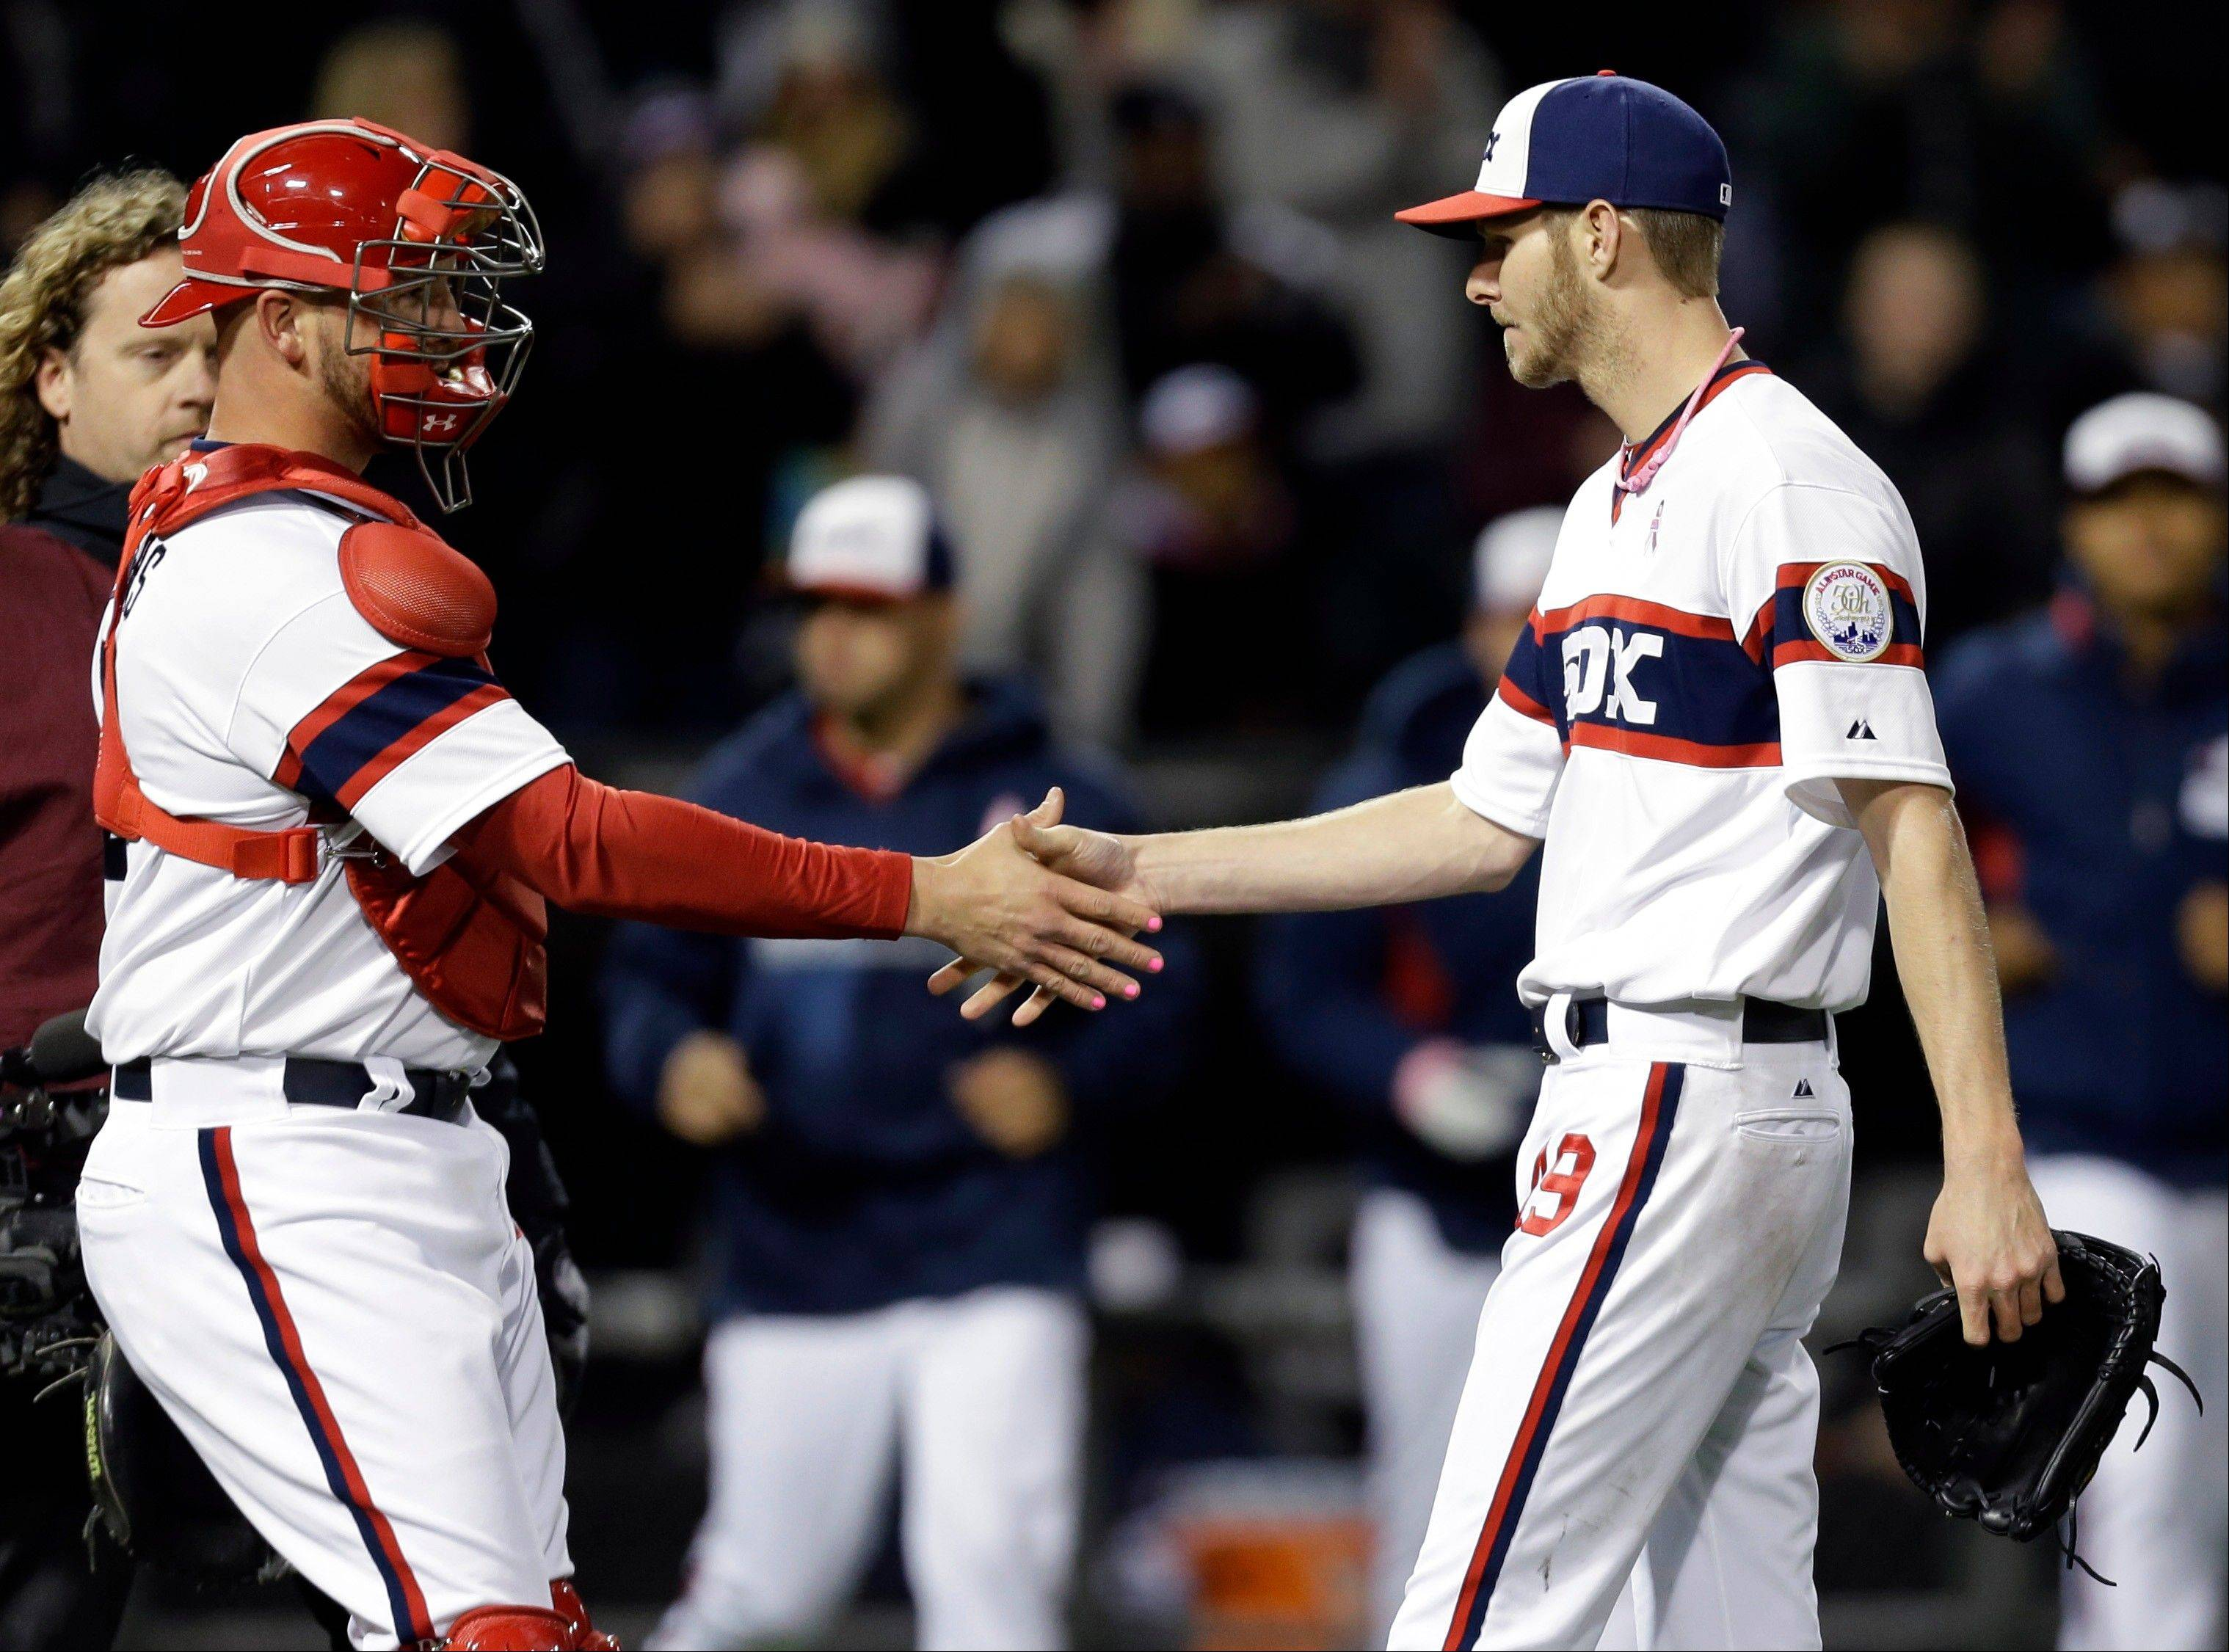 White Sox starter Chris Sale celebrates with catcher Tyler Flowers after his 1-hit shutout victory over the Angels on Sunday night at U.S. Cellular Field.